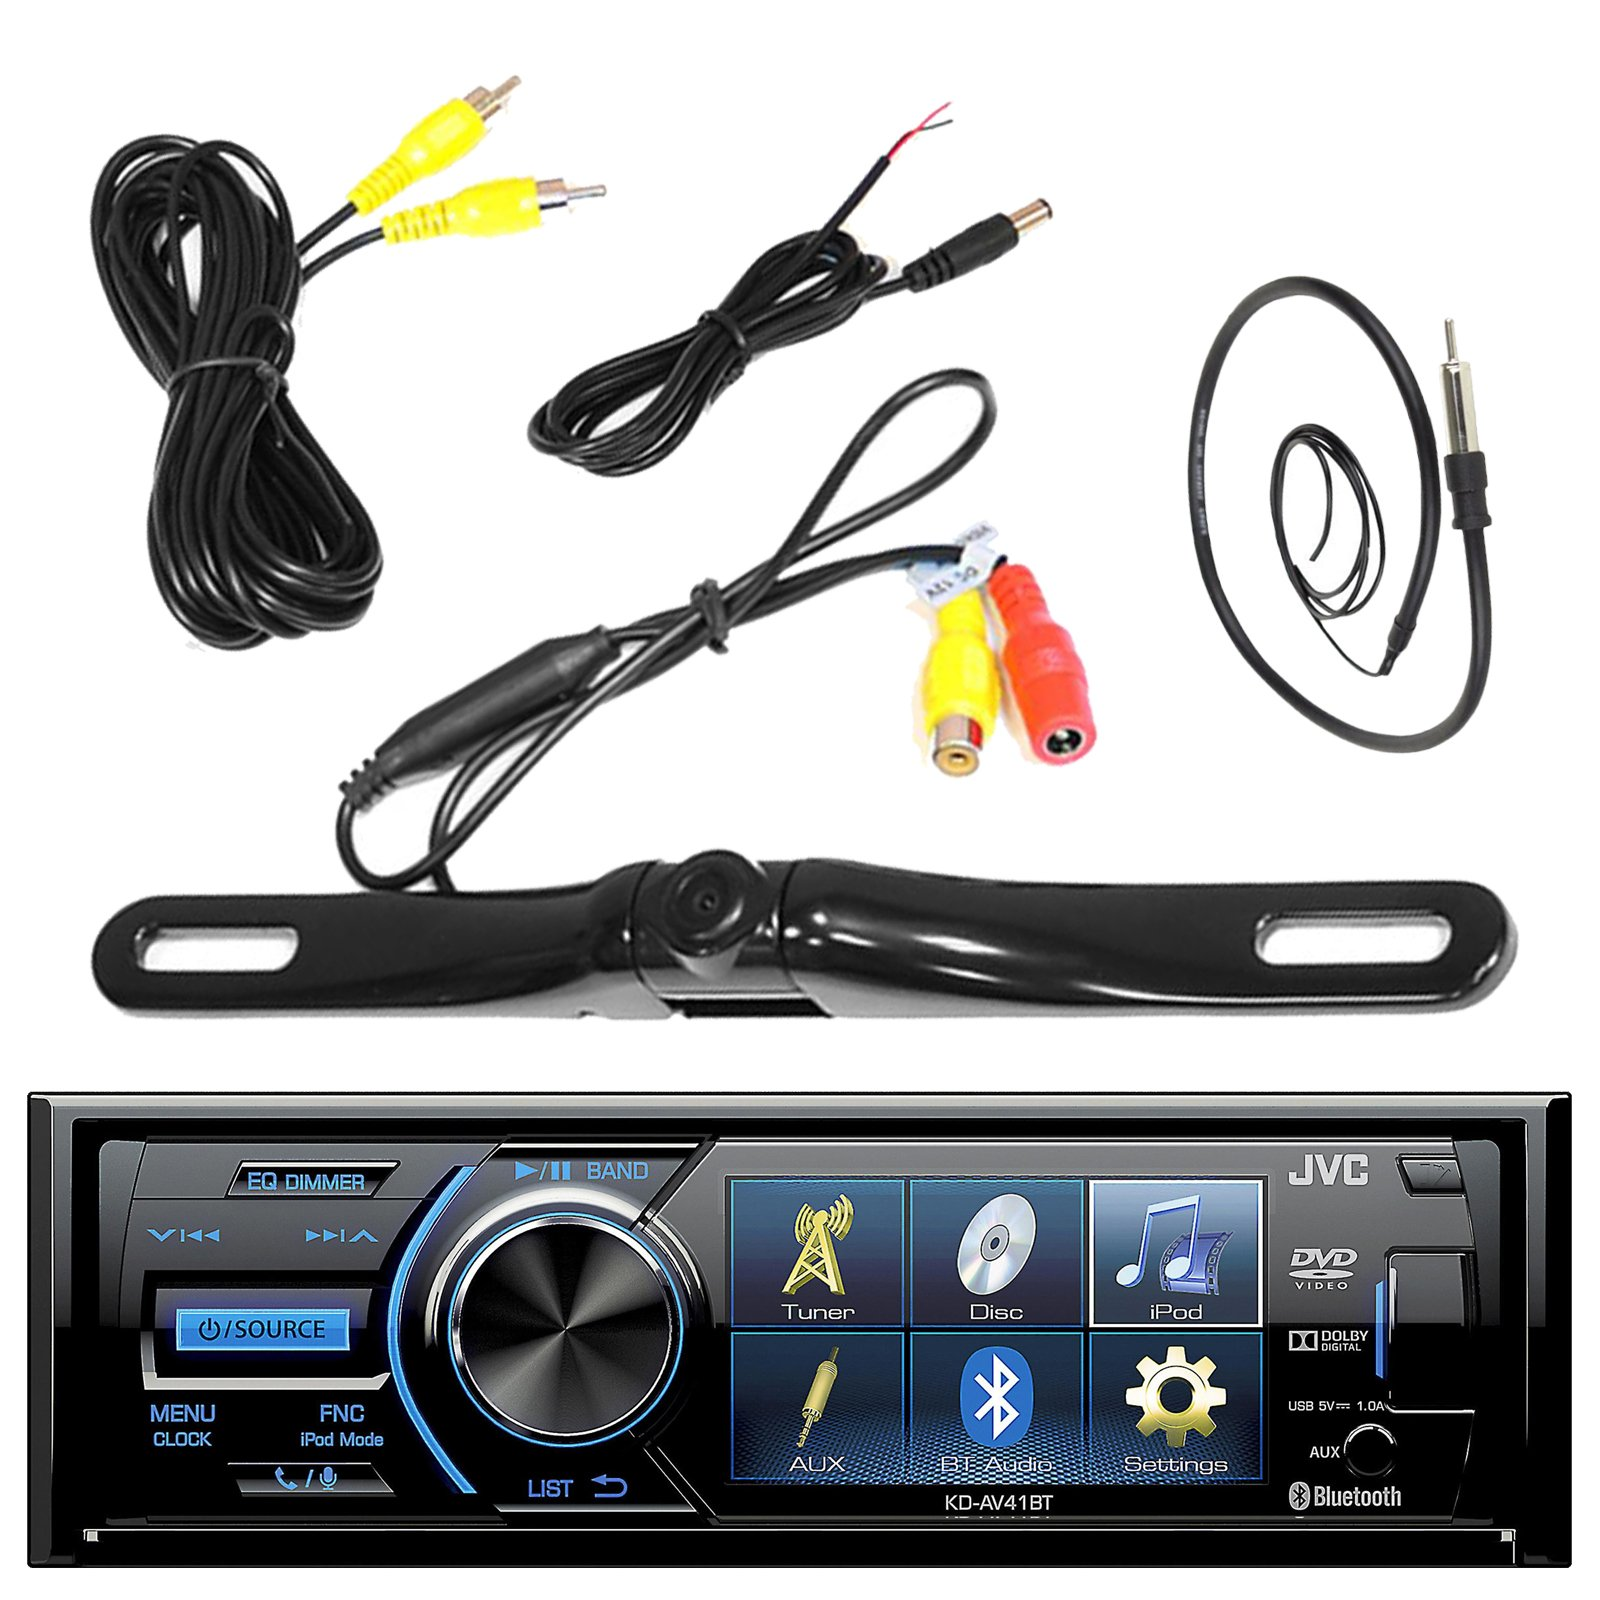 JVC KD-AV41BT 3'' Inch Display Car CD DVD USB Bluetooth Stereo Receiver Bundle Combo With License Plate Mount Rear View Colored Backup Parking Camera, Enrock 22'' AM/FM Radio Antenna